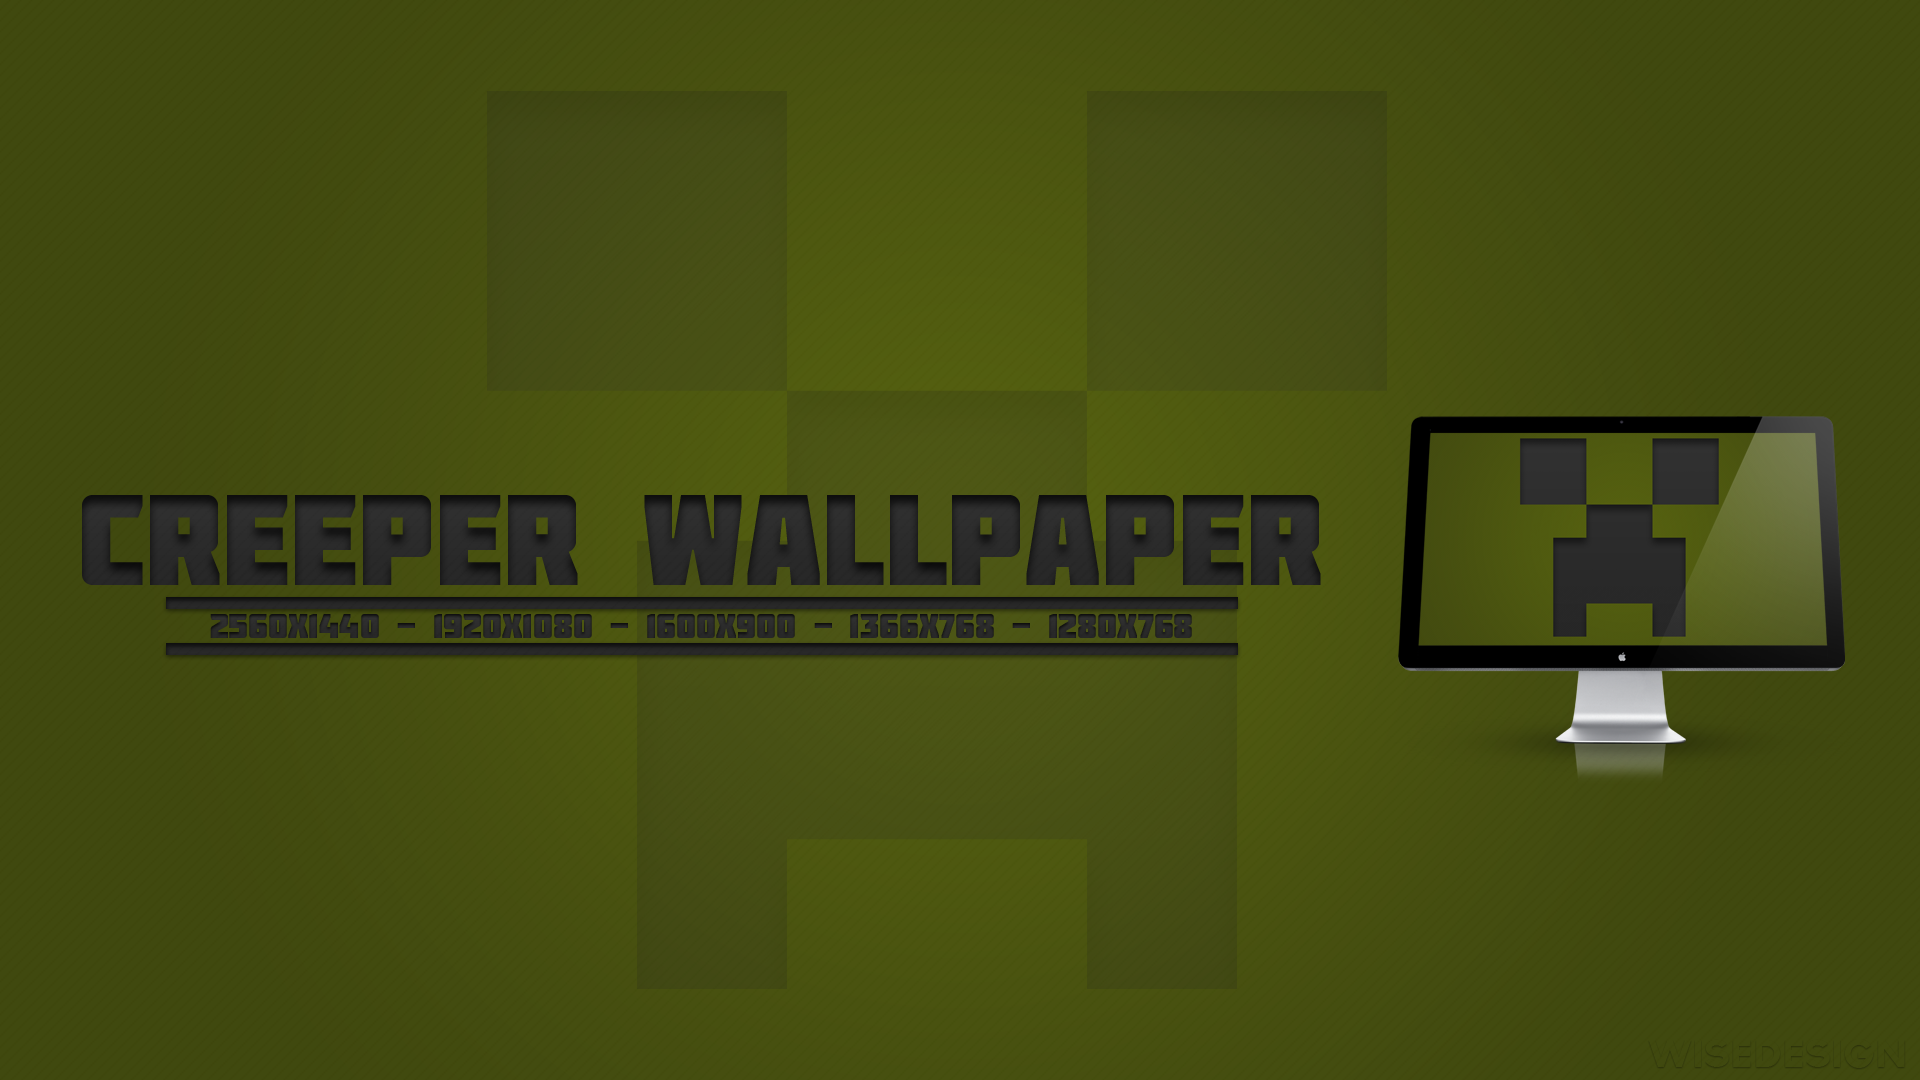 Minecraft Creeper Wallpaper By Liamwise On Deviantart